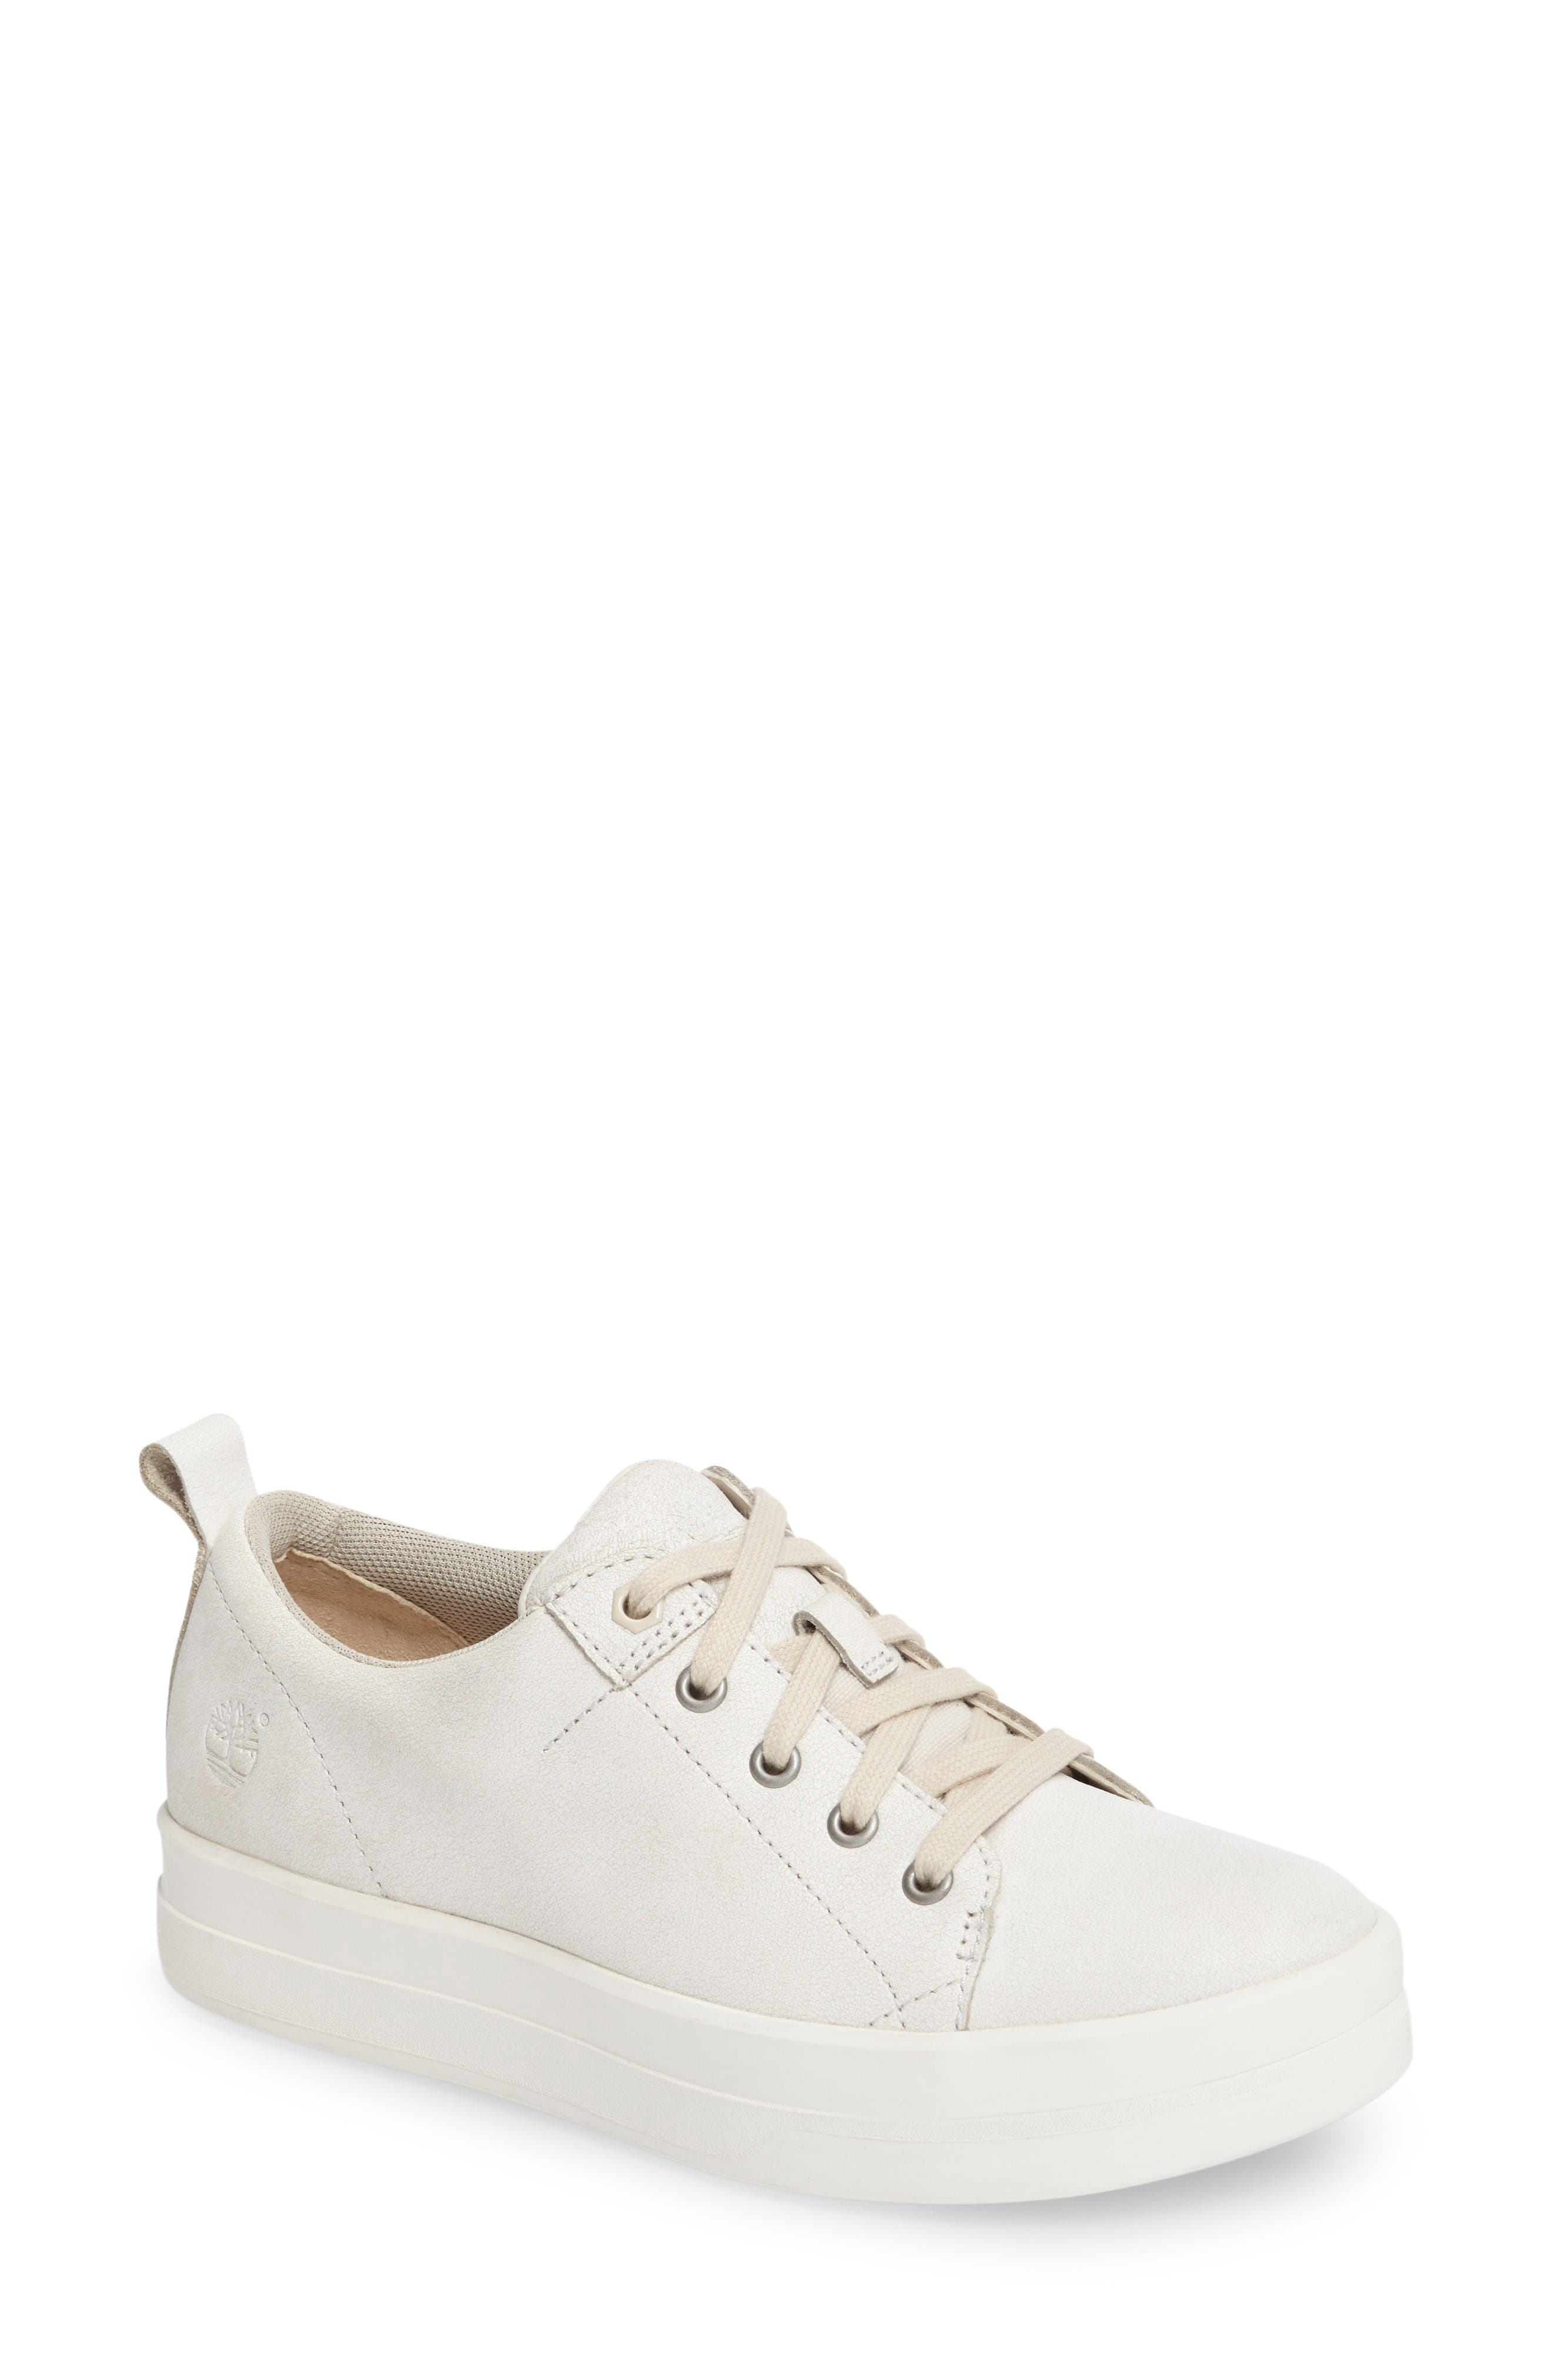 Mayliss Oxford Sneaker,                         Main,                         color, White Mystic Snake Suede